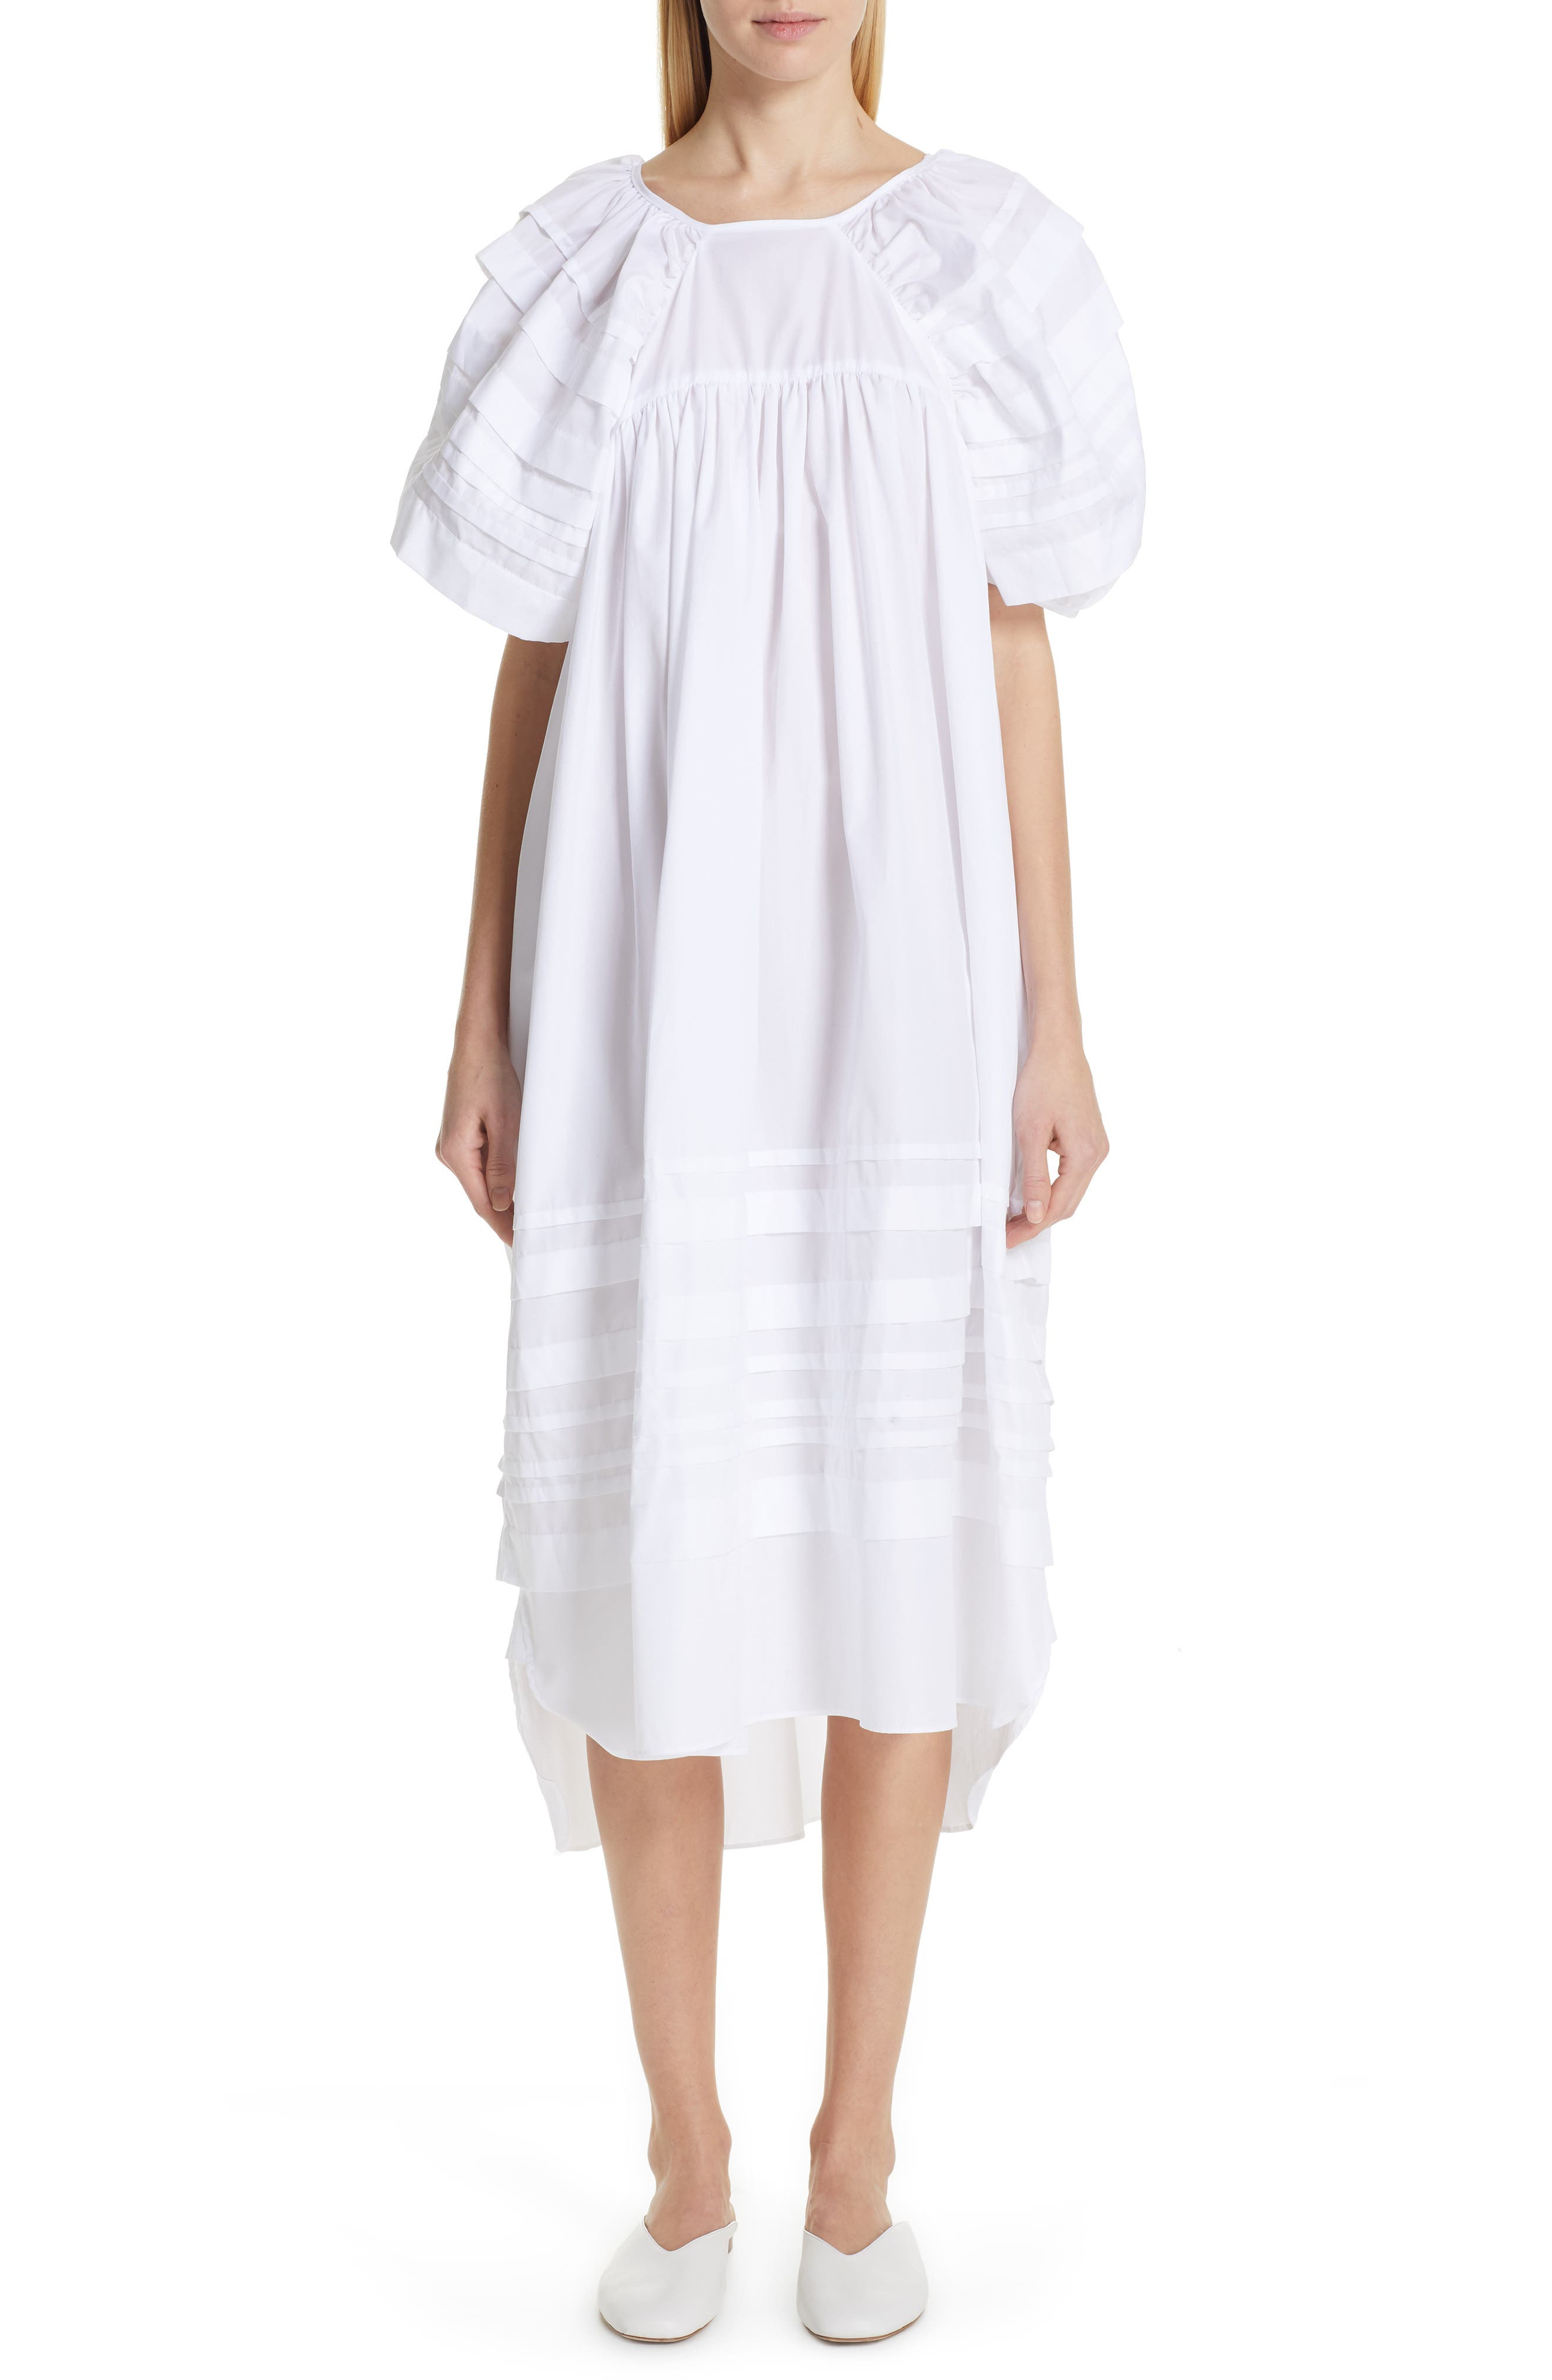 CECILIE BAHNSEN Penelope Dress in White